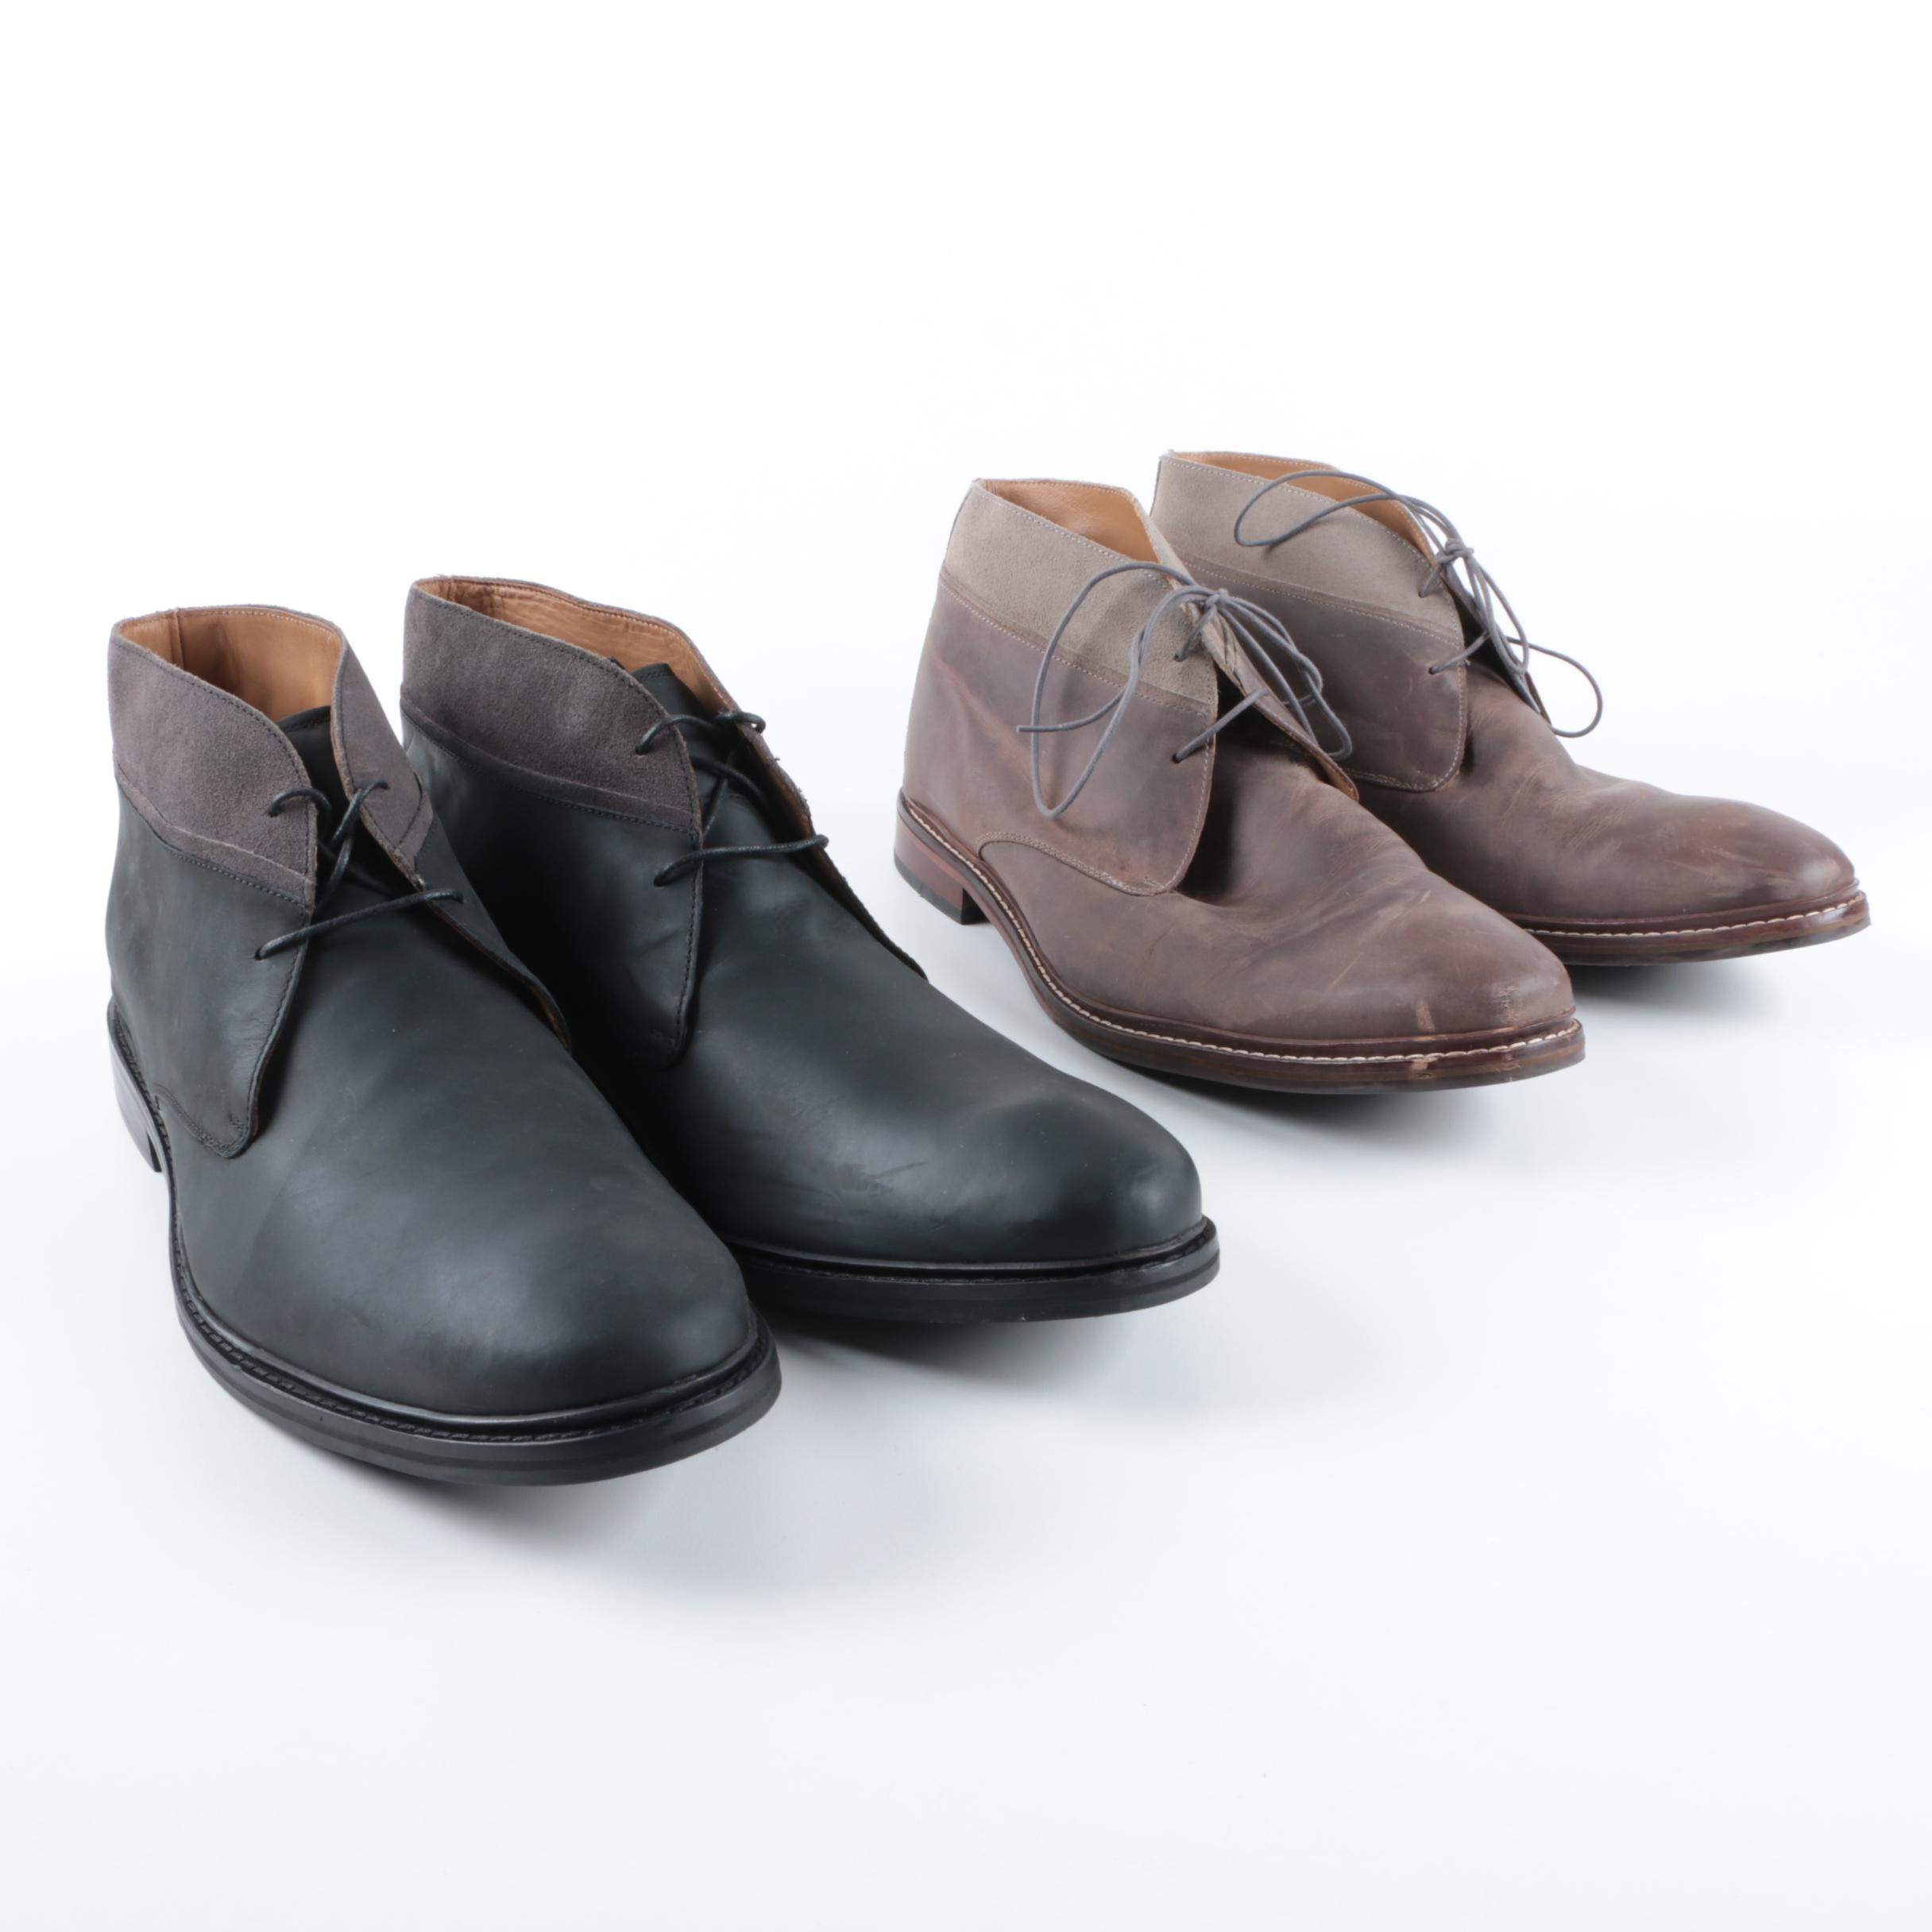 Cole Haan Benton Welt Leather and Suede Chukka Boots